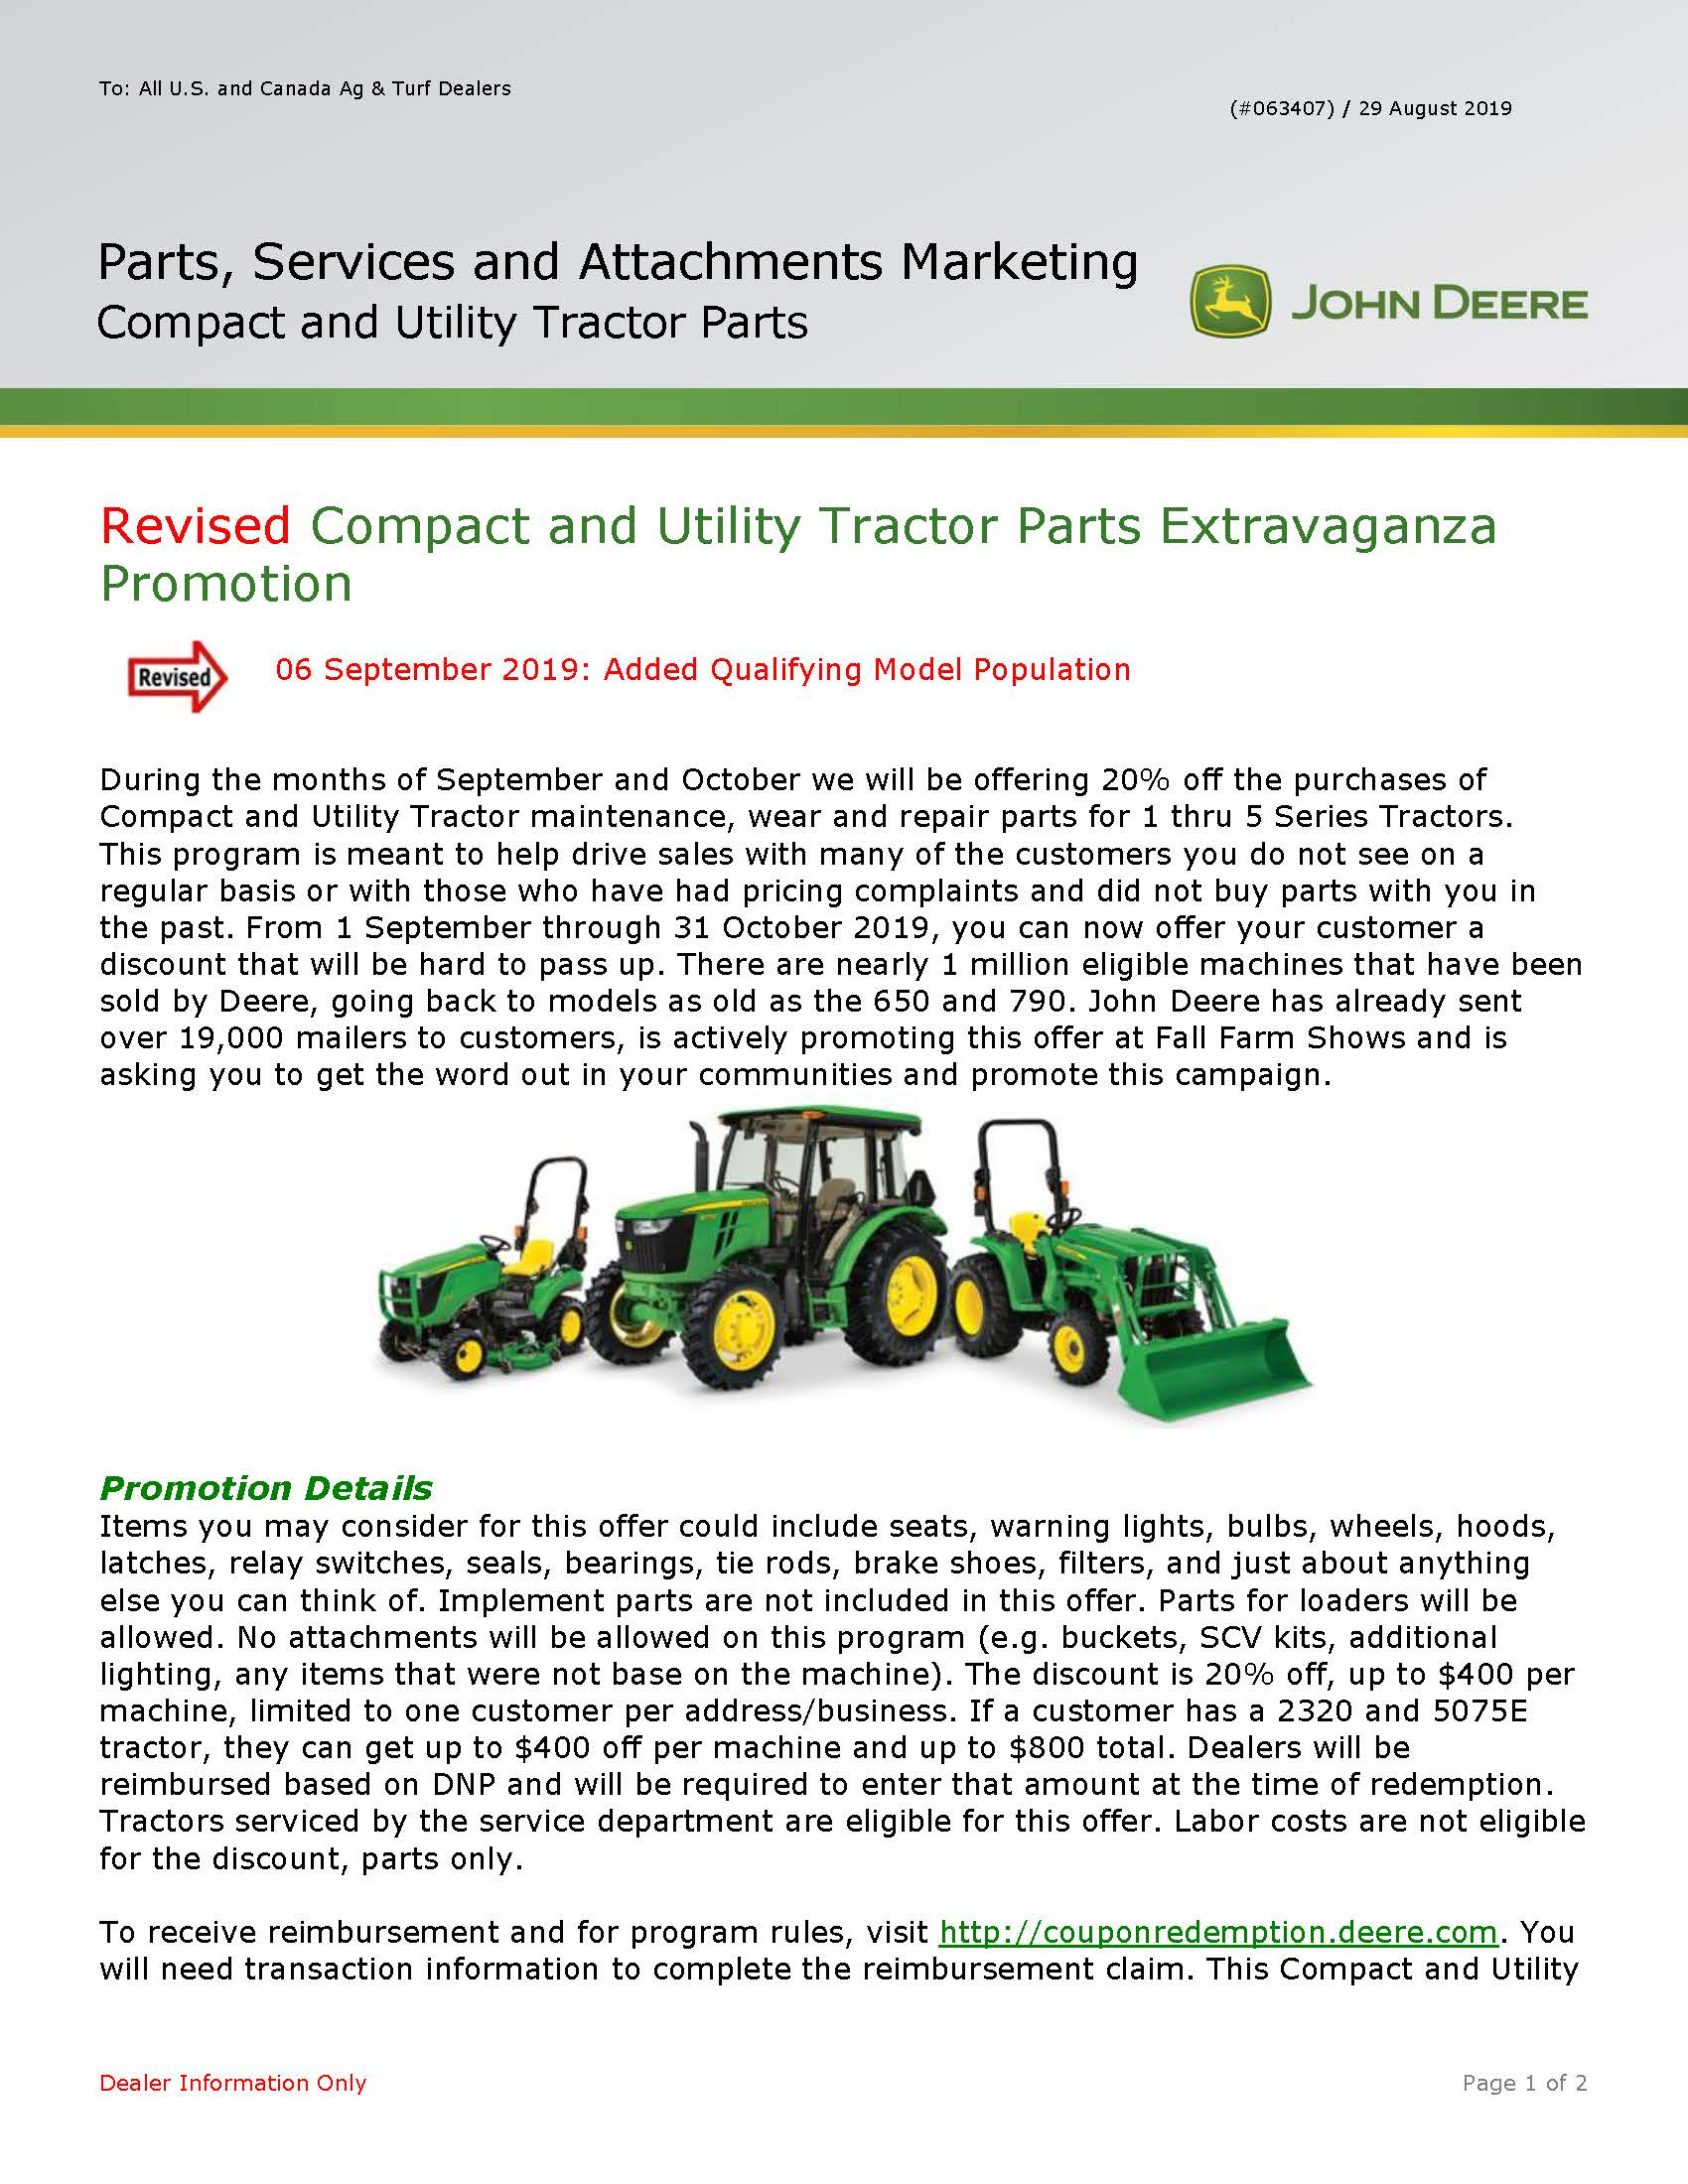 Details on Special Pricing of Compact utility tractor parts